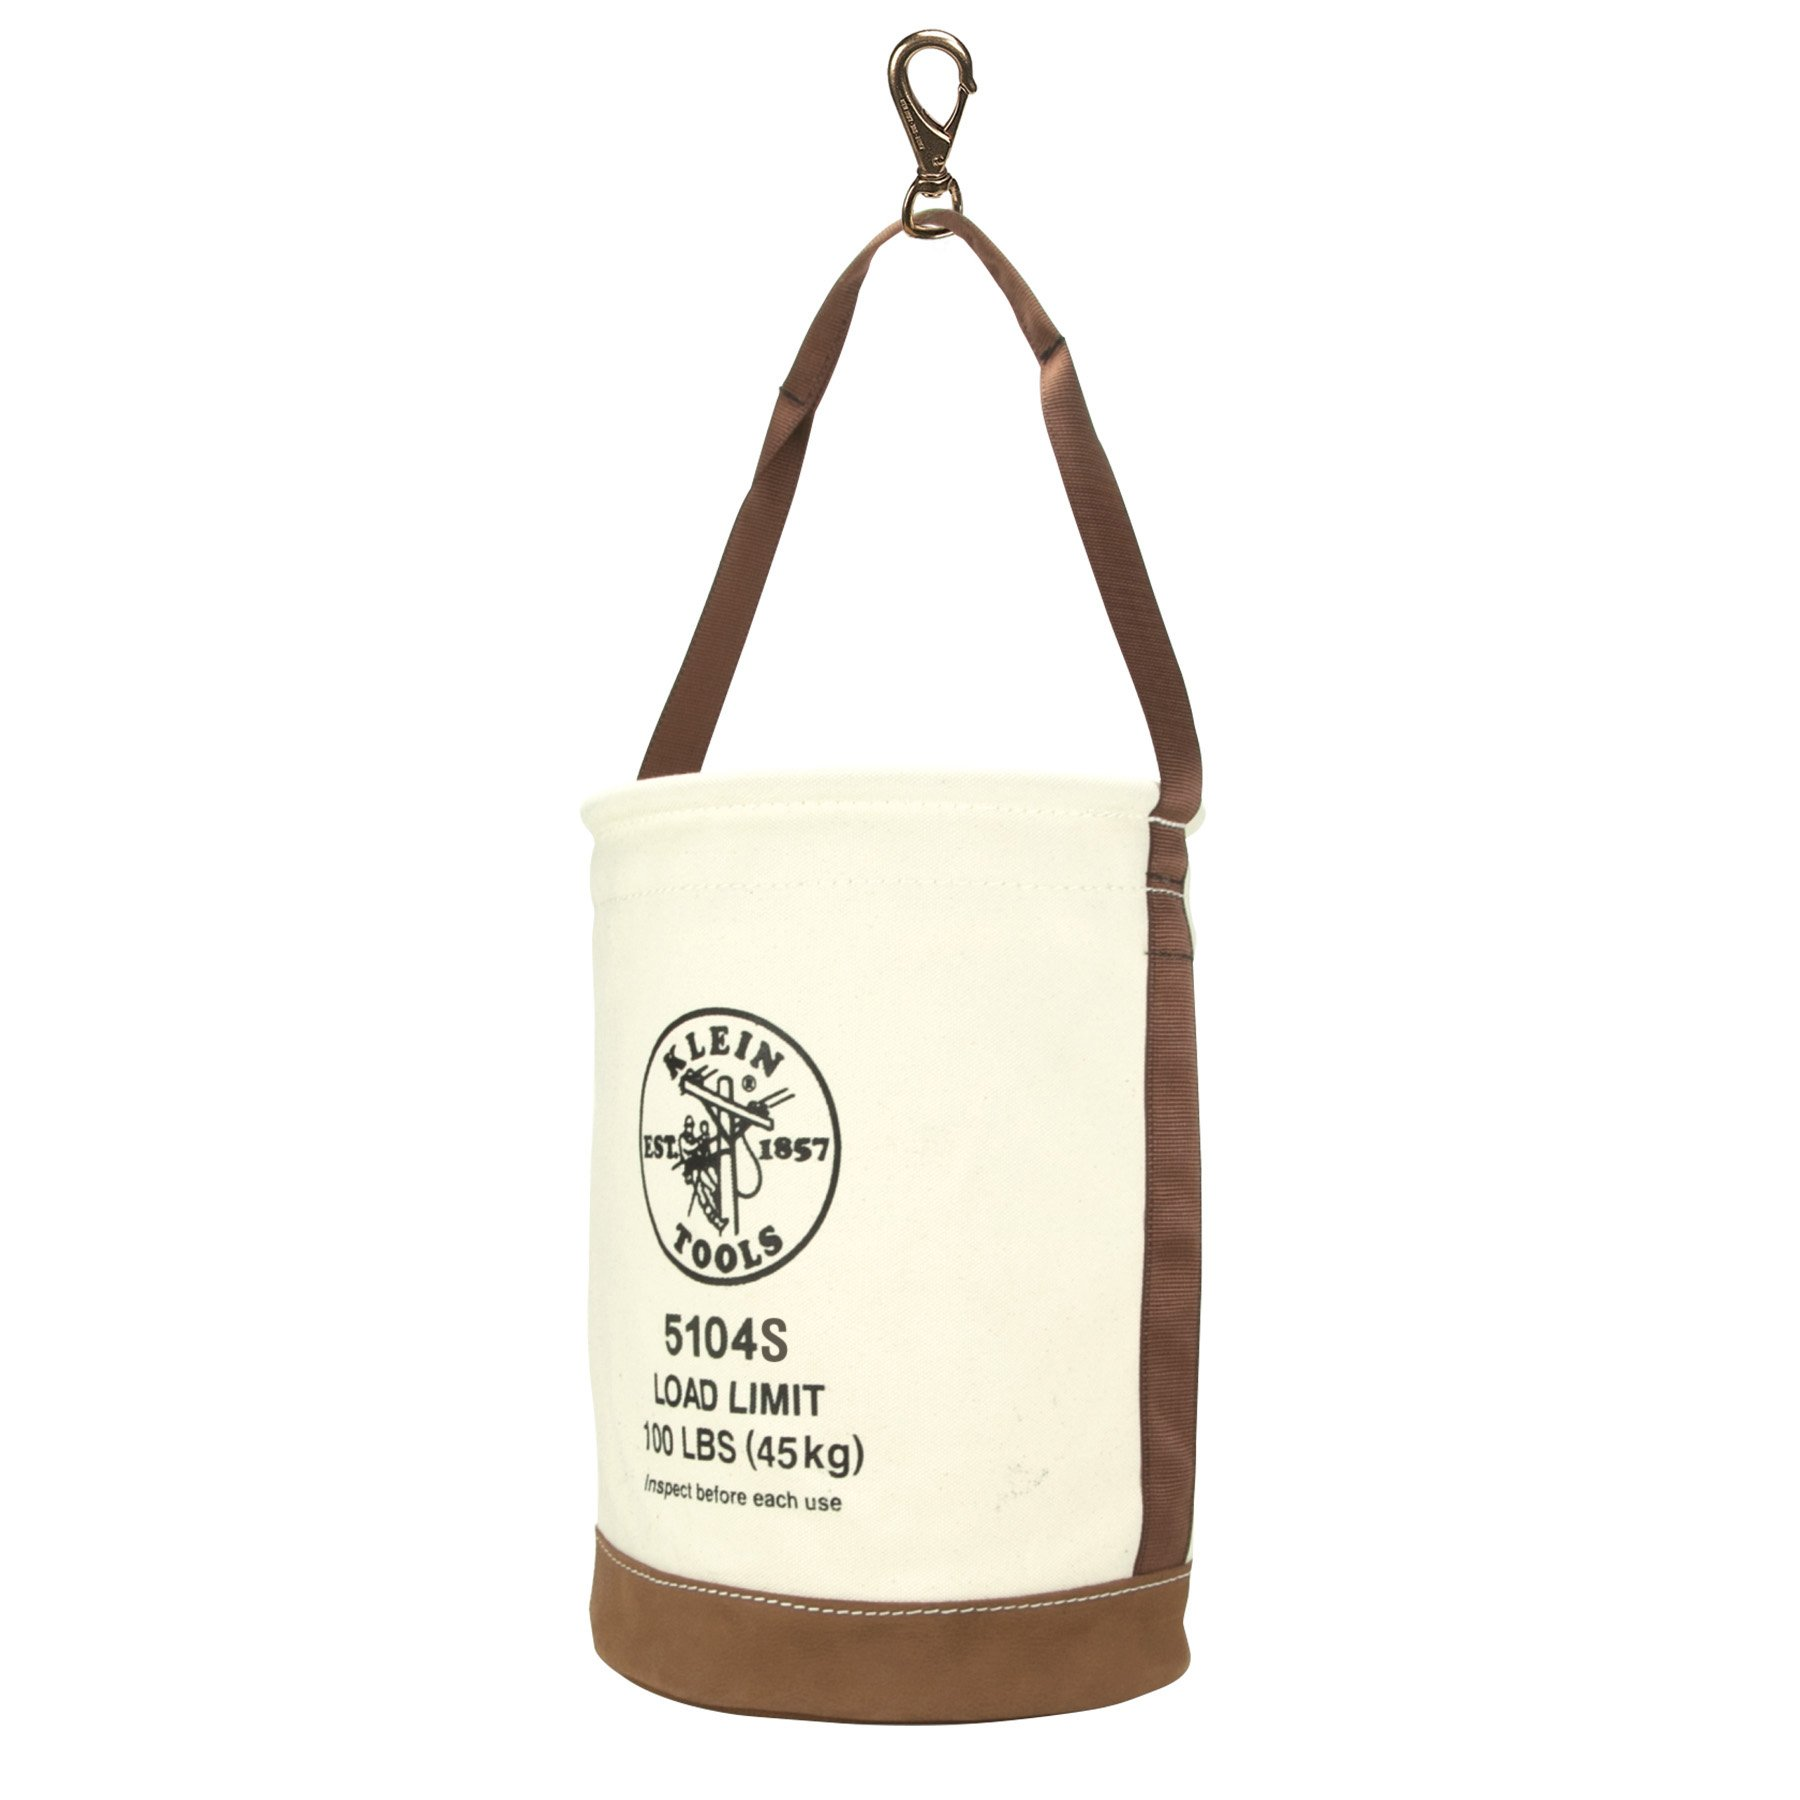 Tool Bucket, No. 4 Canvas and Leather Bottom, with Swivel Snap Hook Klein Tools 5104S